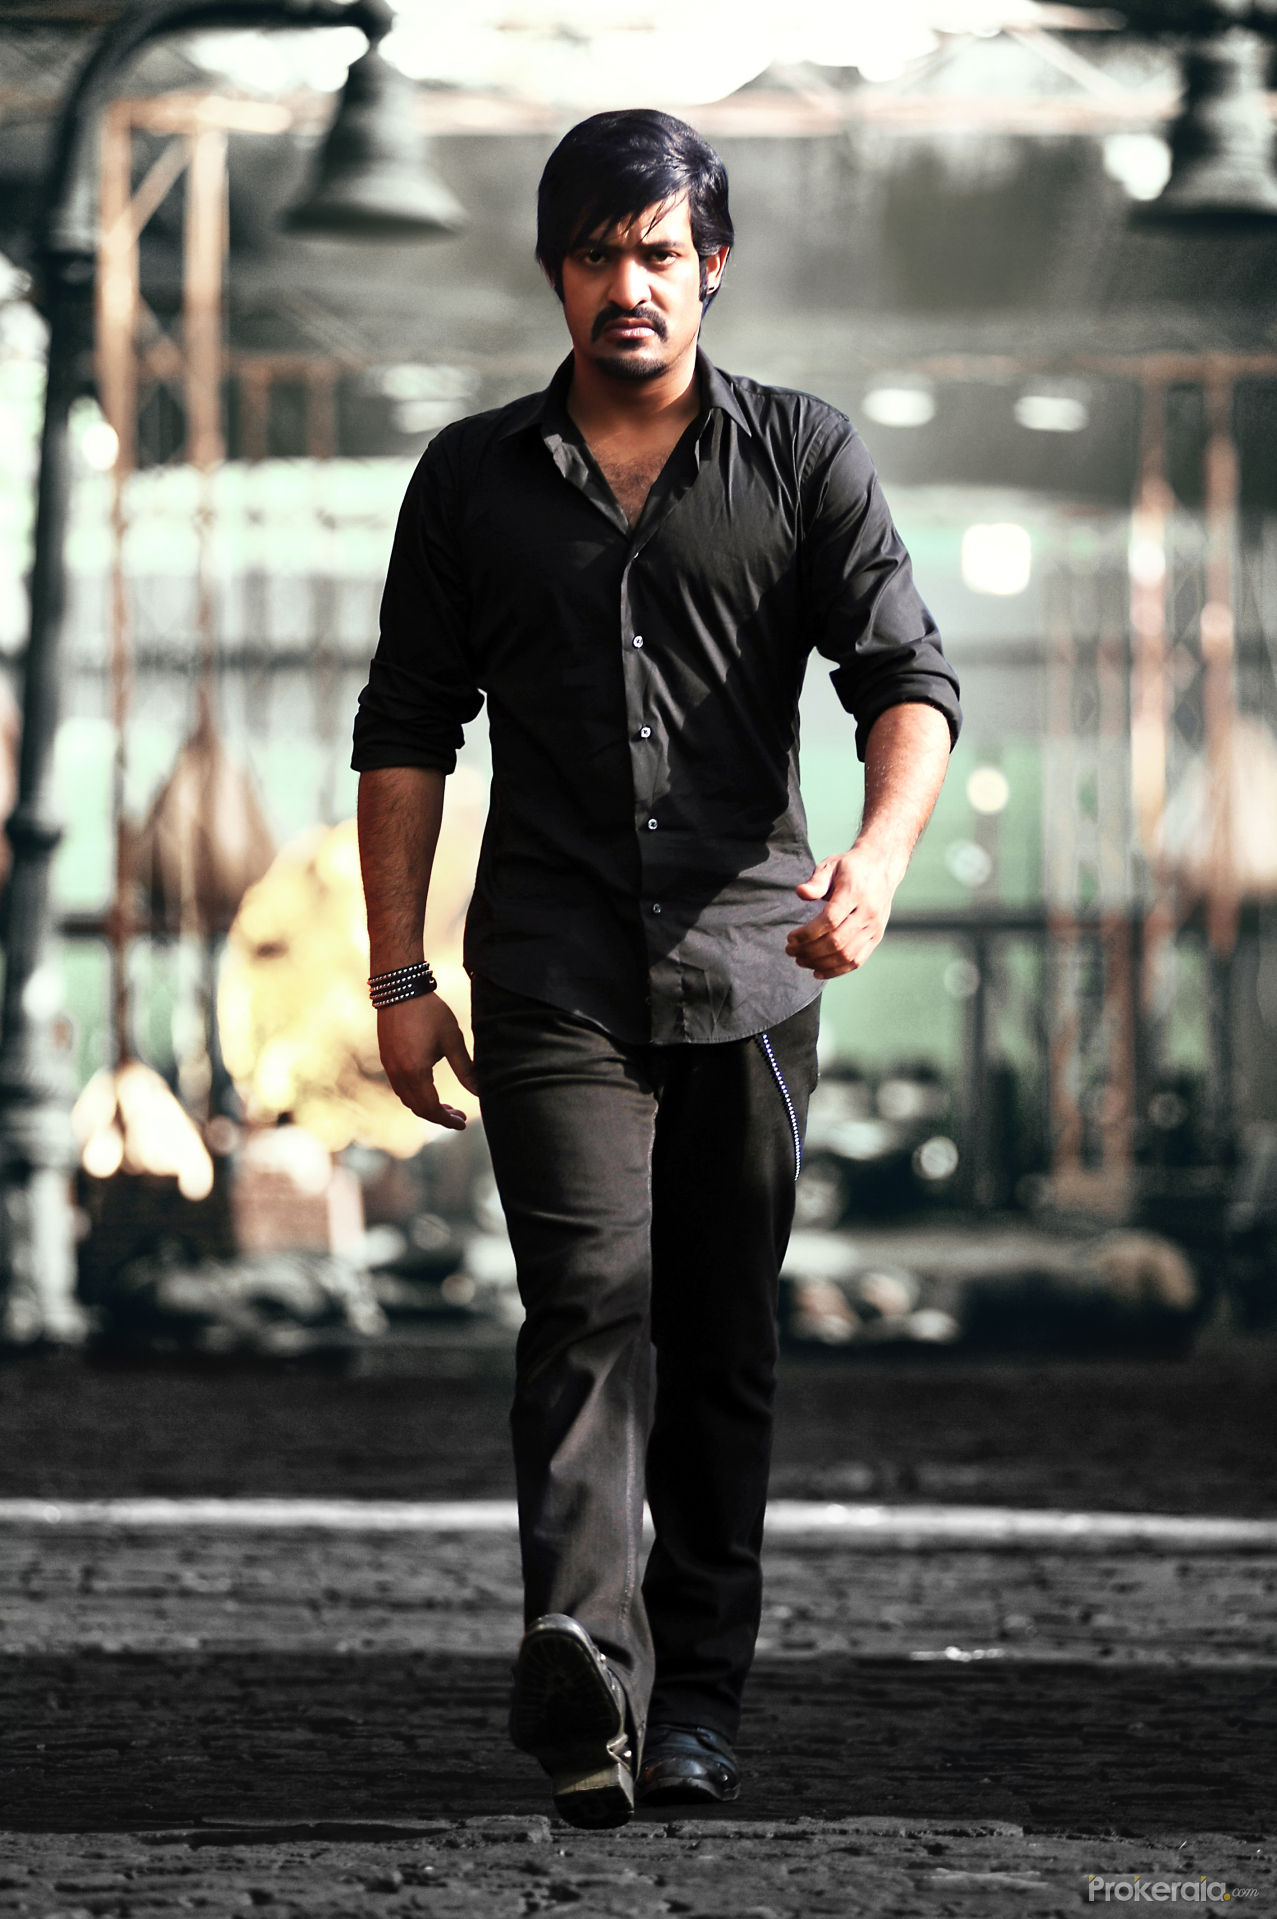 jr. ntr in badsha | baadshah telugu movie wallpapers for download